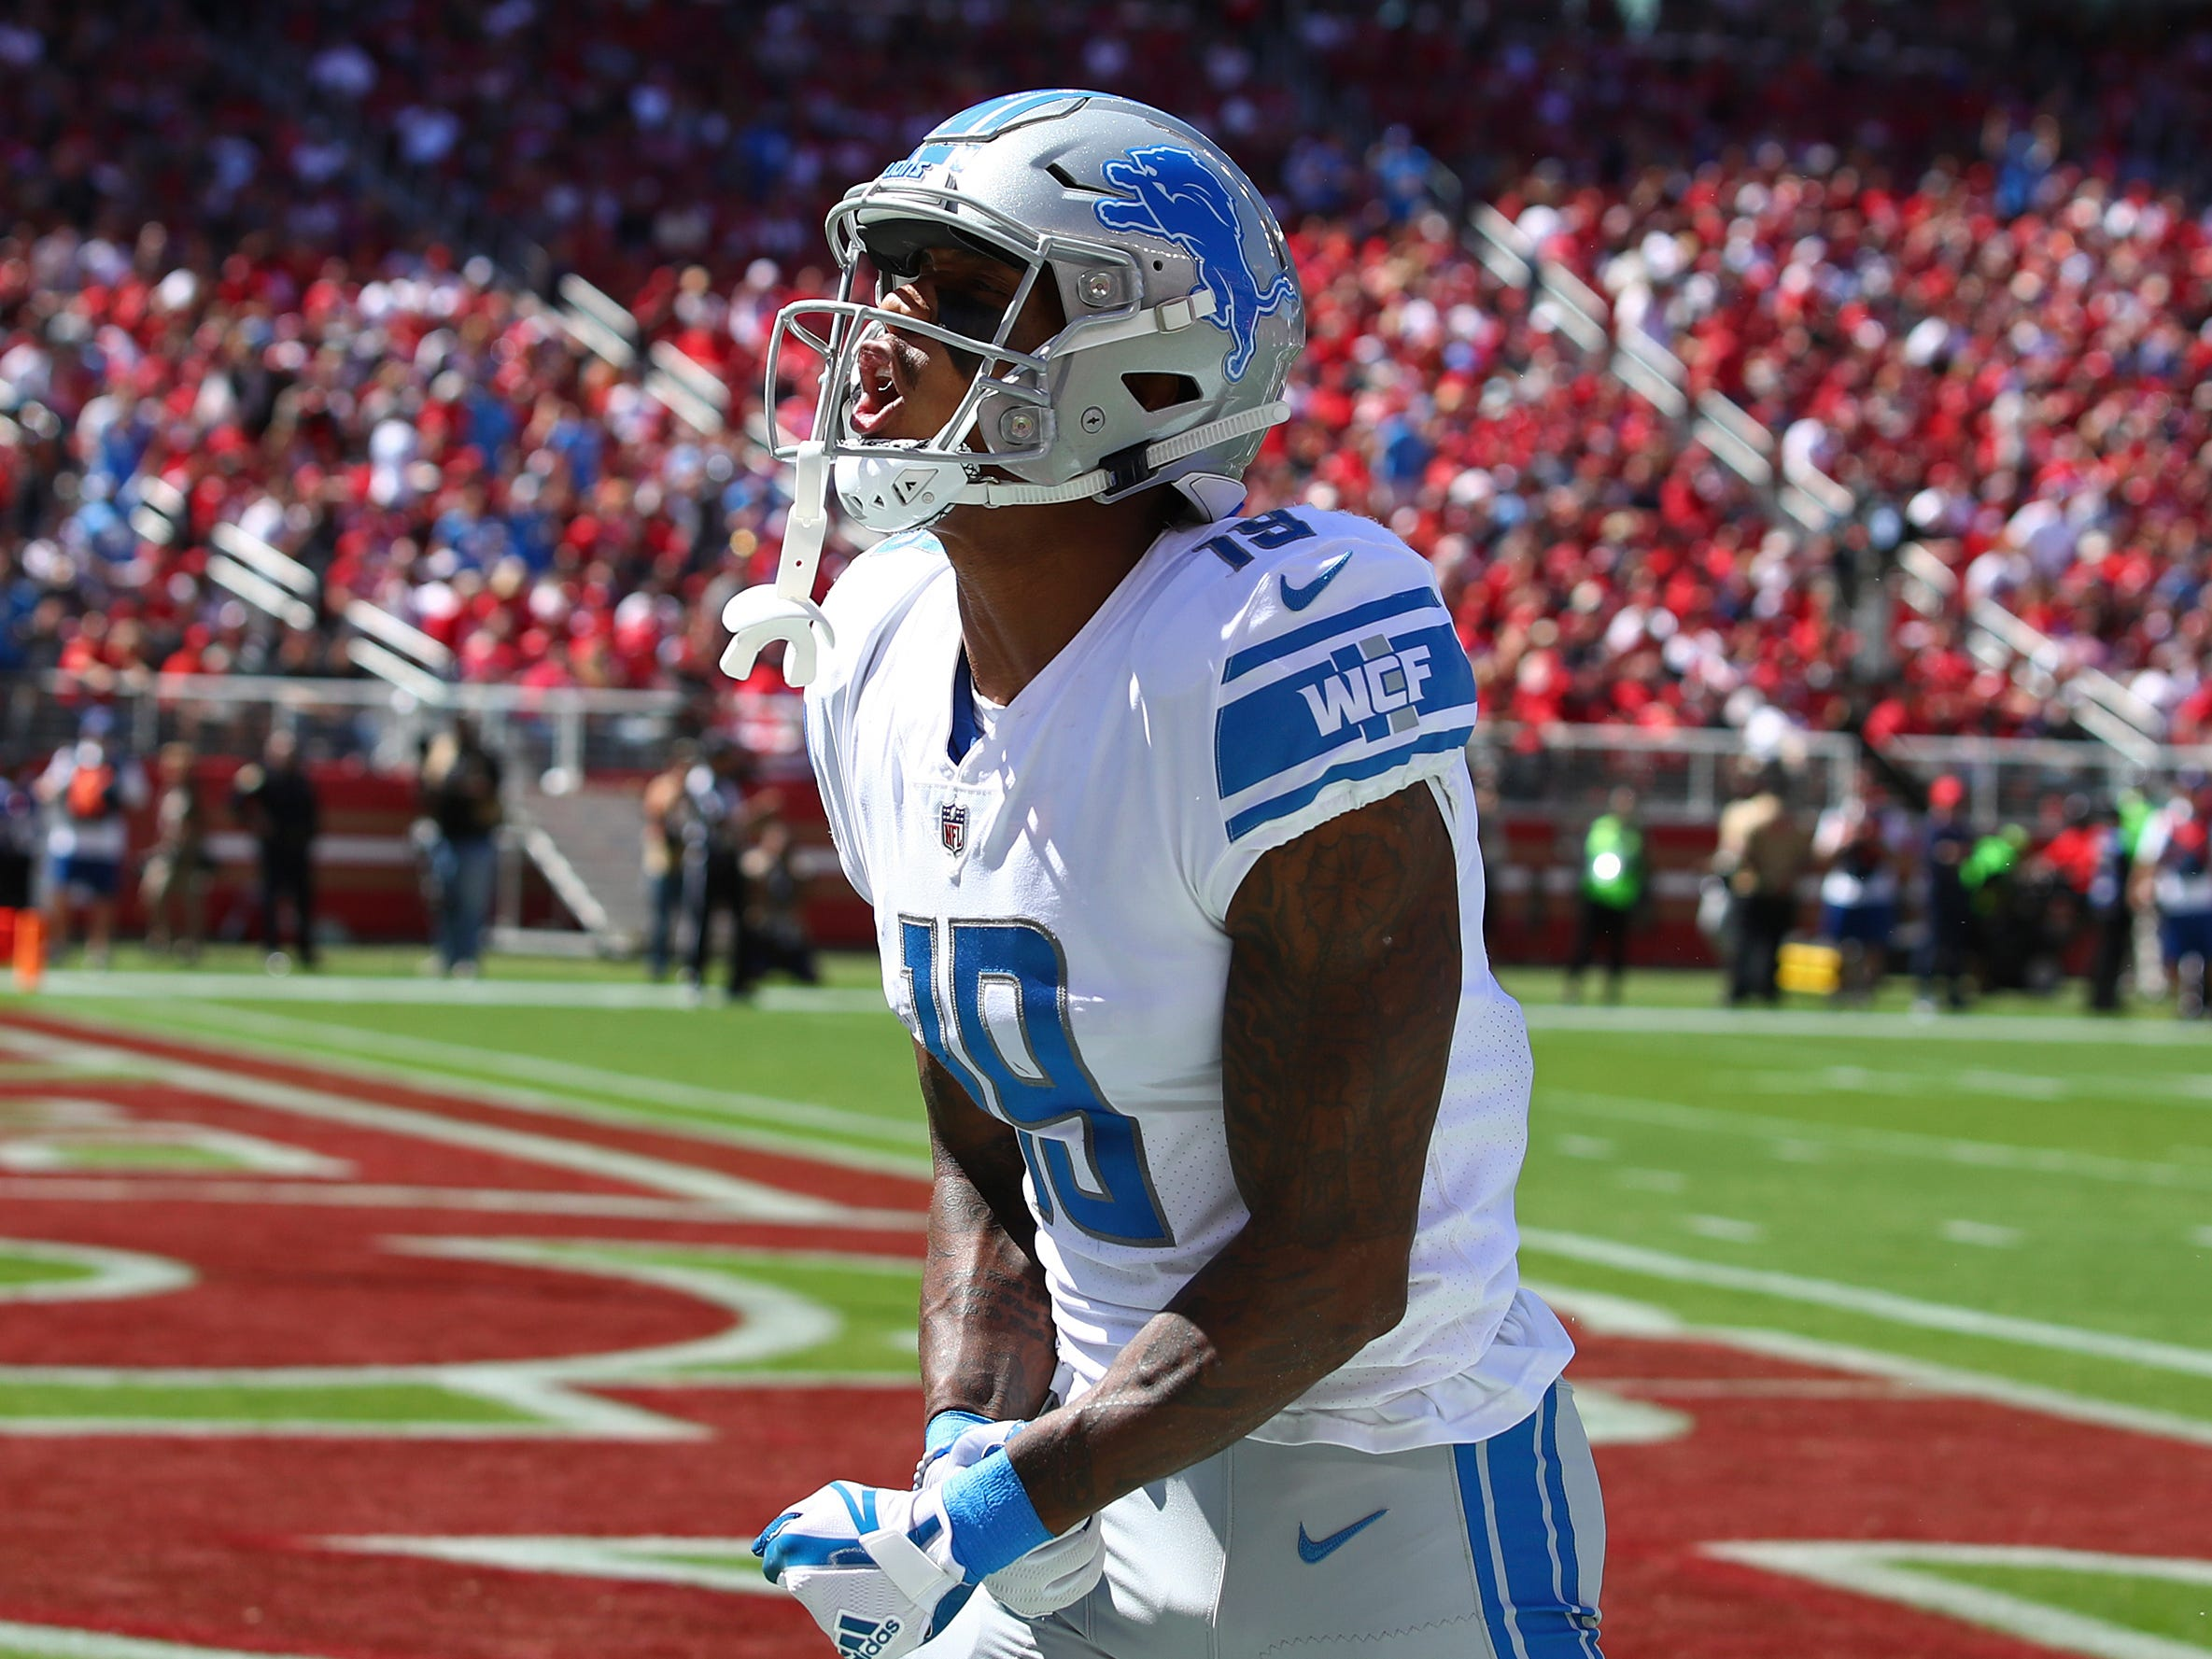 Lions wide receiver Kenny Golladay celebrates after scoring a touchdown during the first half on Sunday, Sept. 16, 2018, in Santa Clara, Calif.